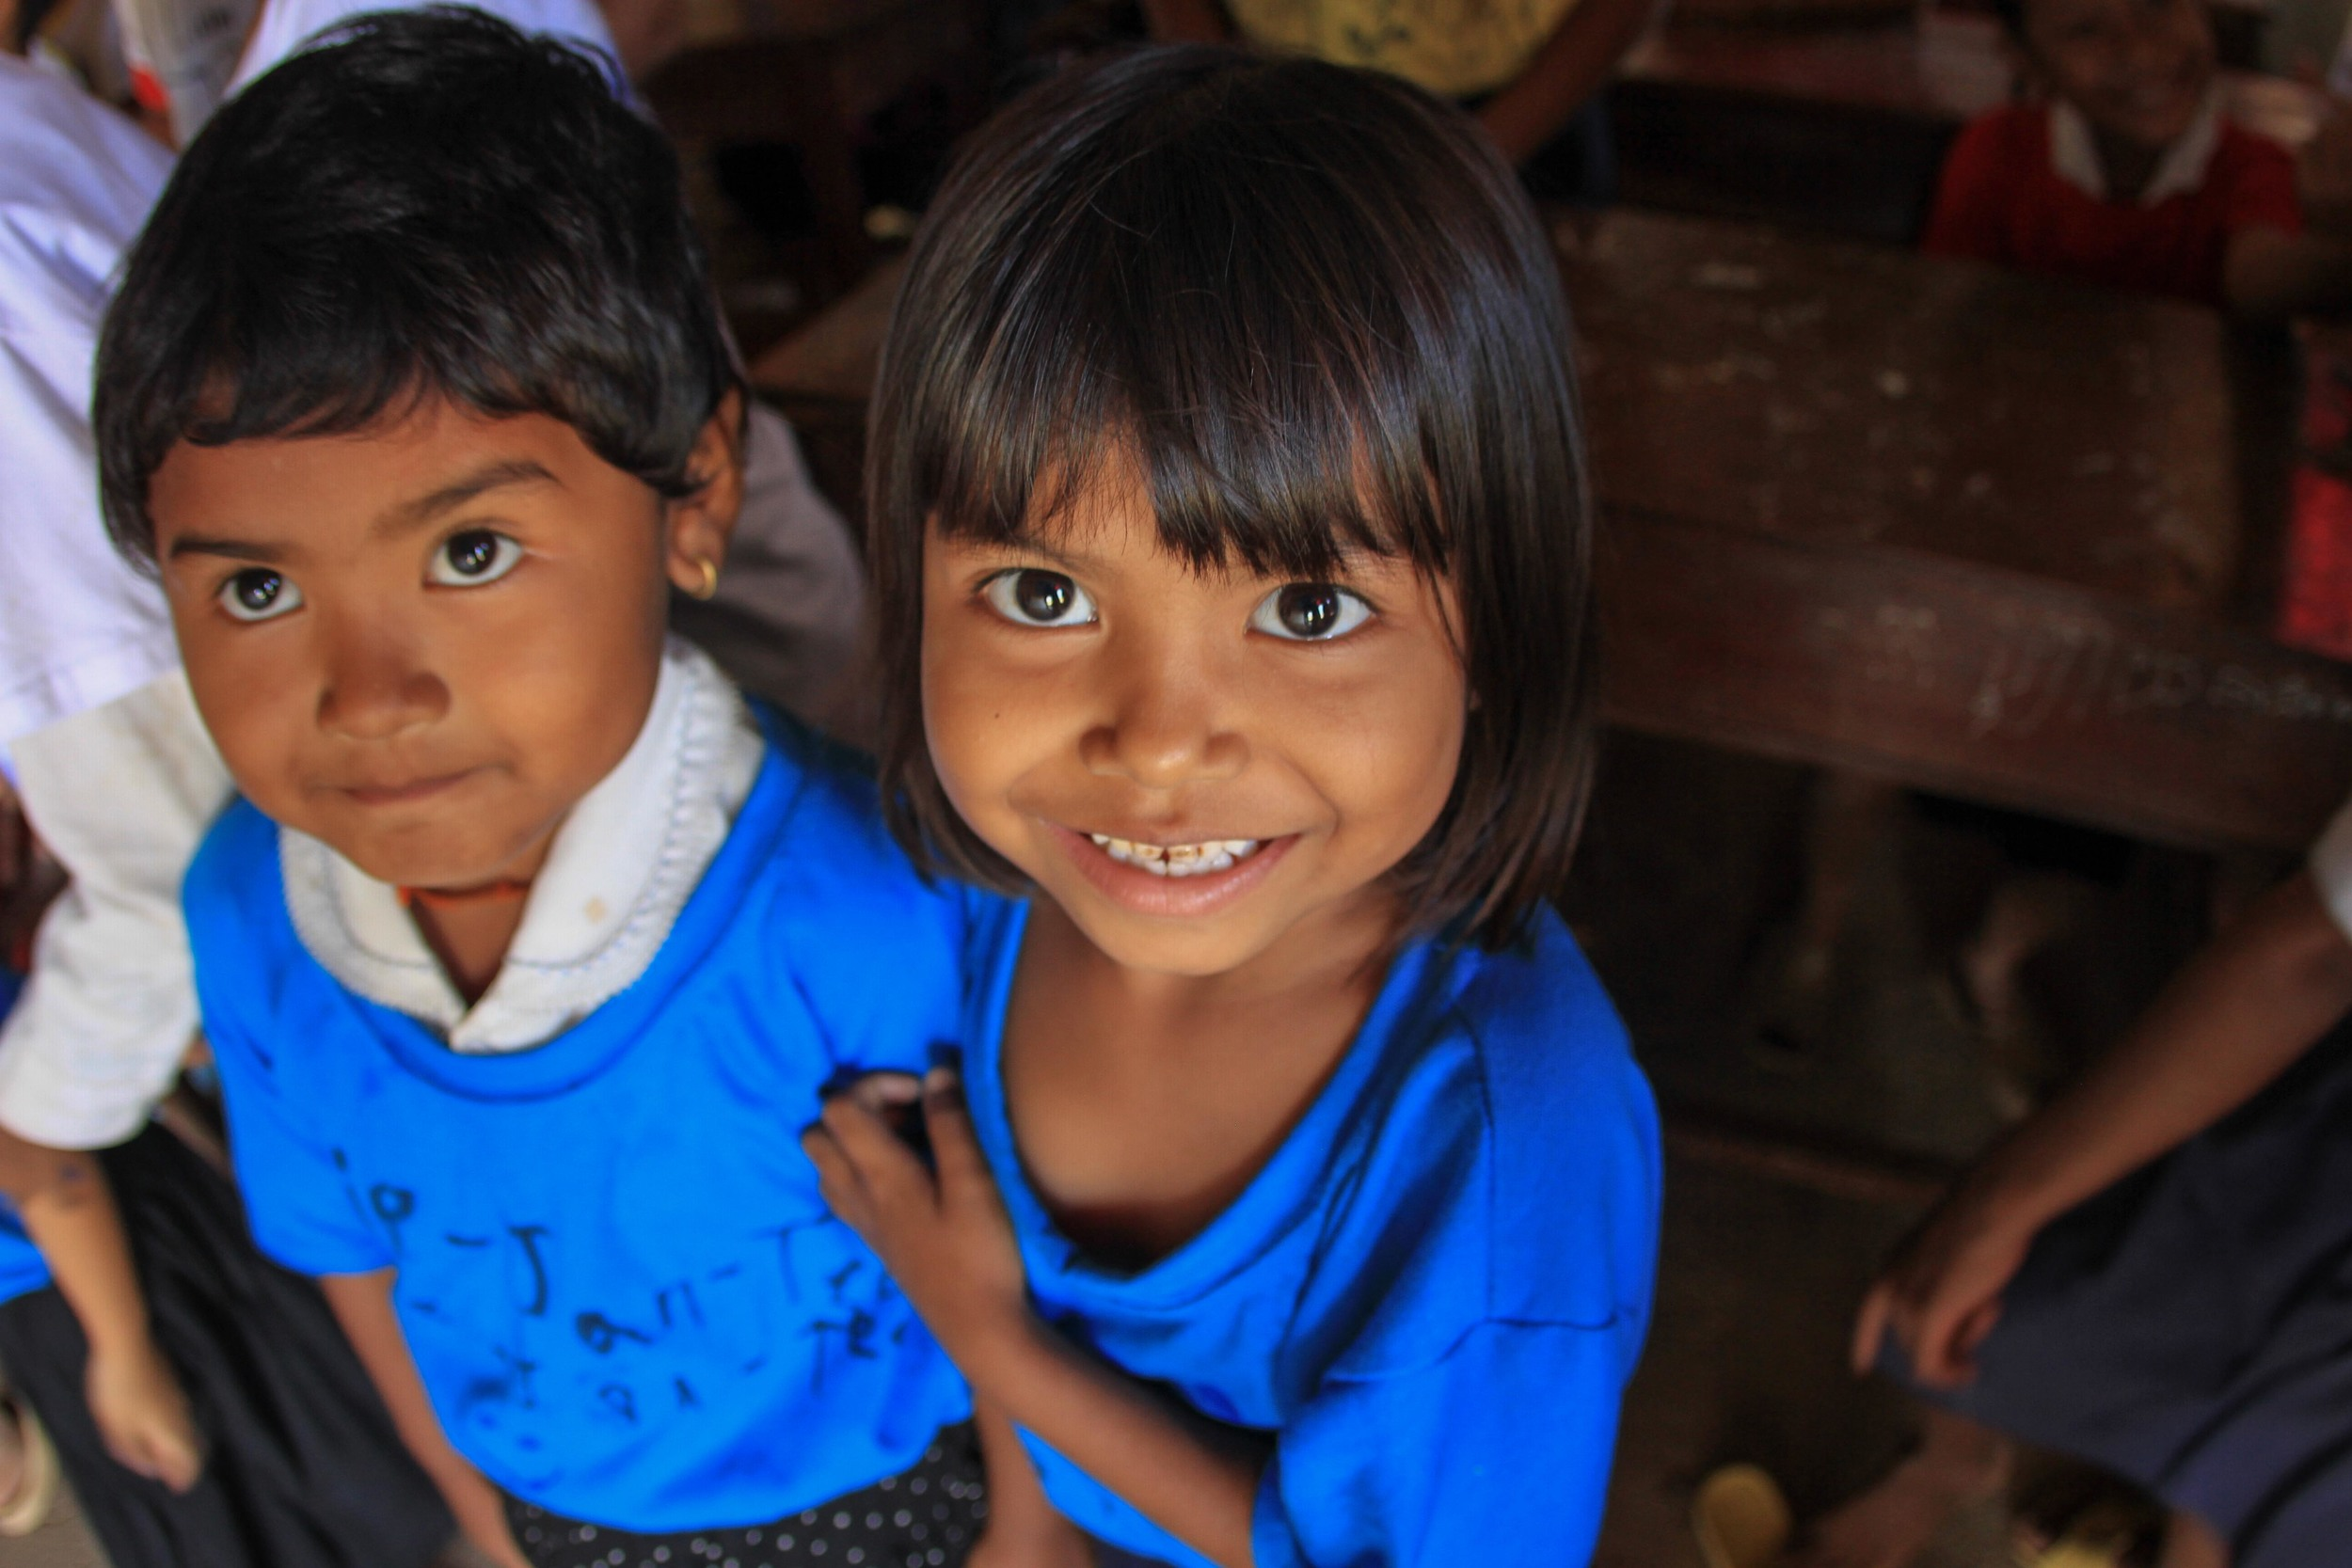 Such endearing kids who won our hearts from the moment we met!